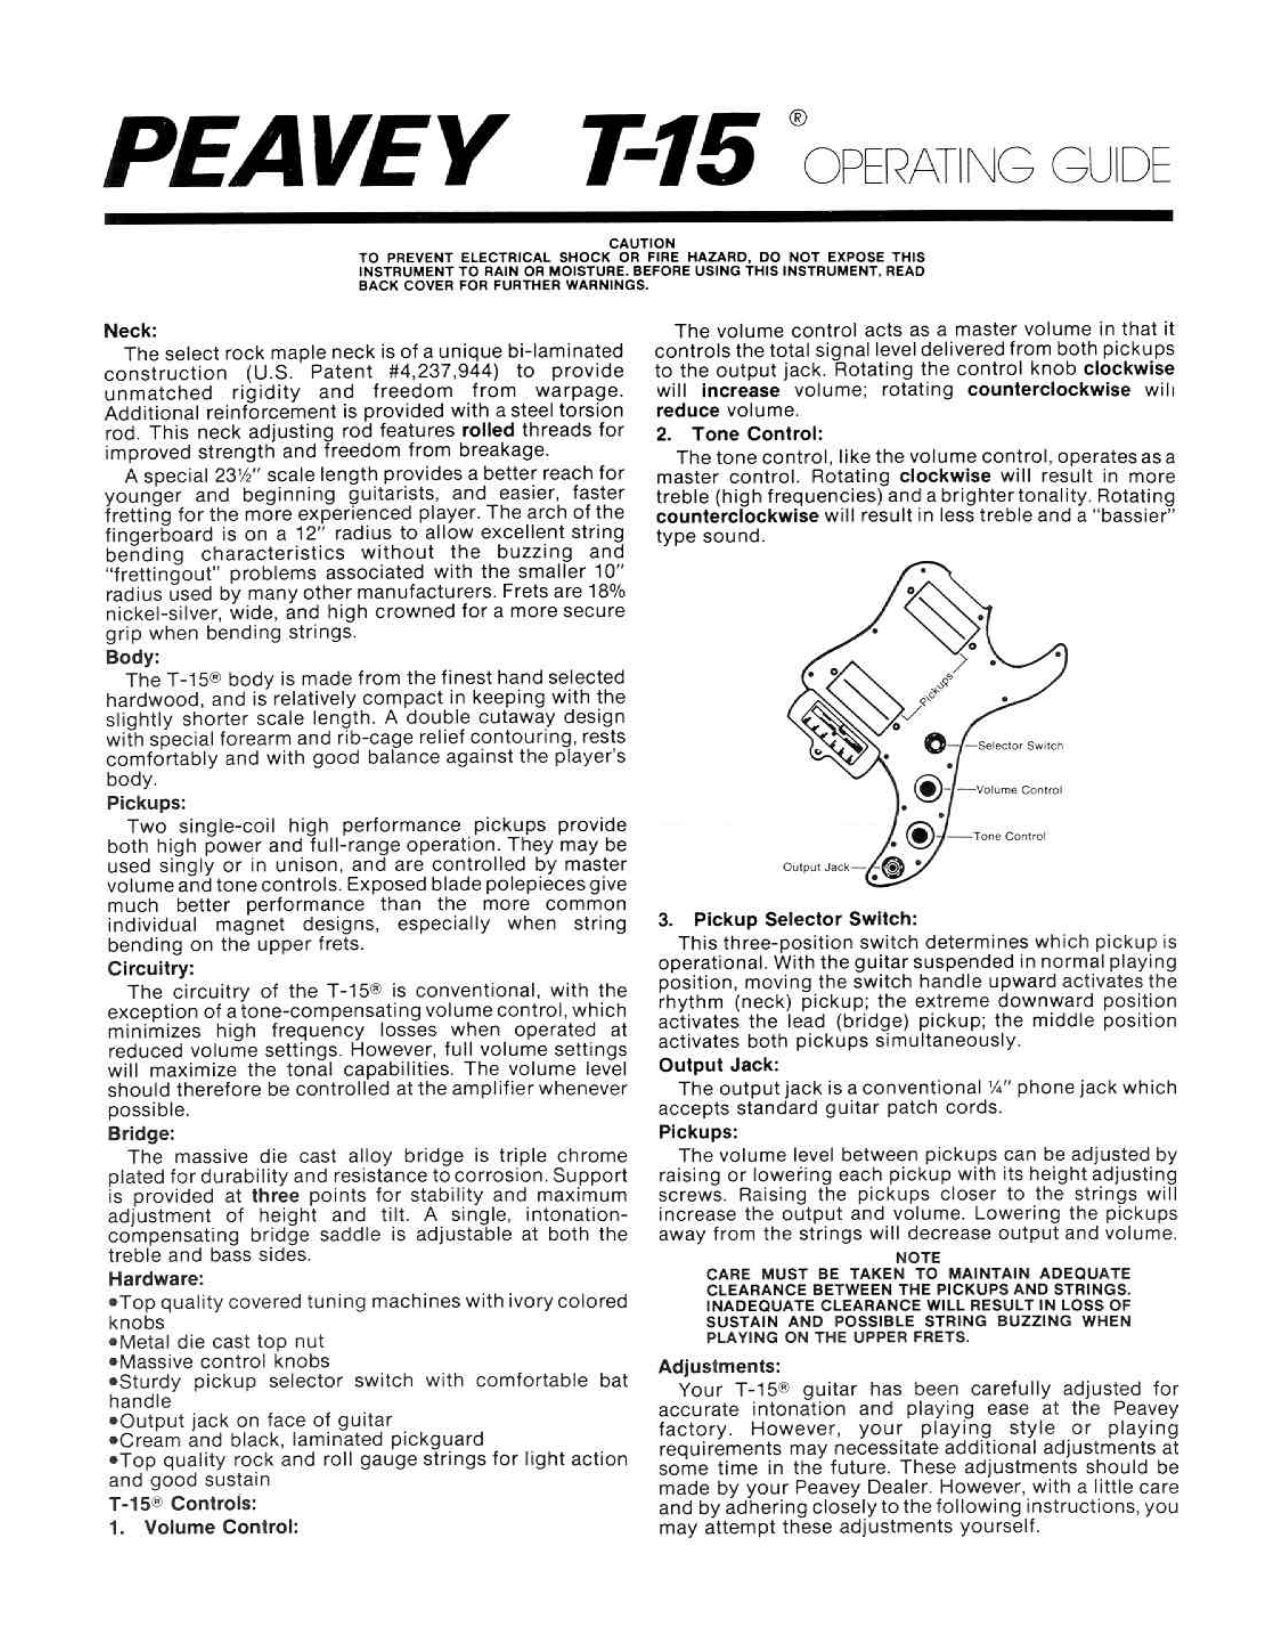 wiring diagram for peavey guitar wiring image pdf for peavey t15 guitar manual on wiring diagram for peavey guitar